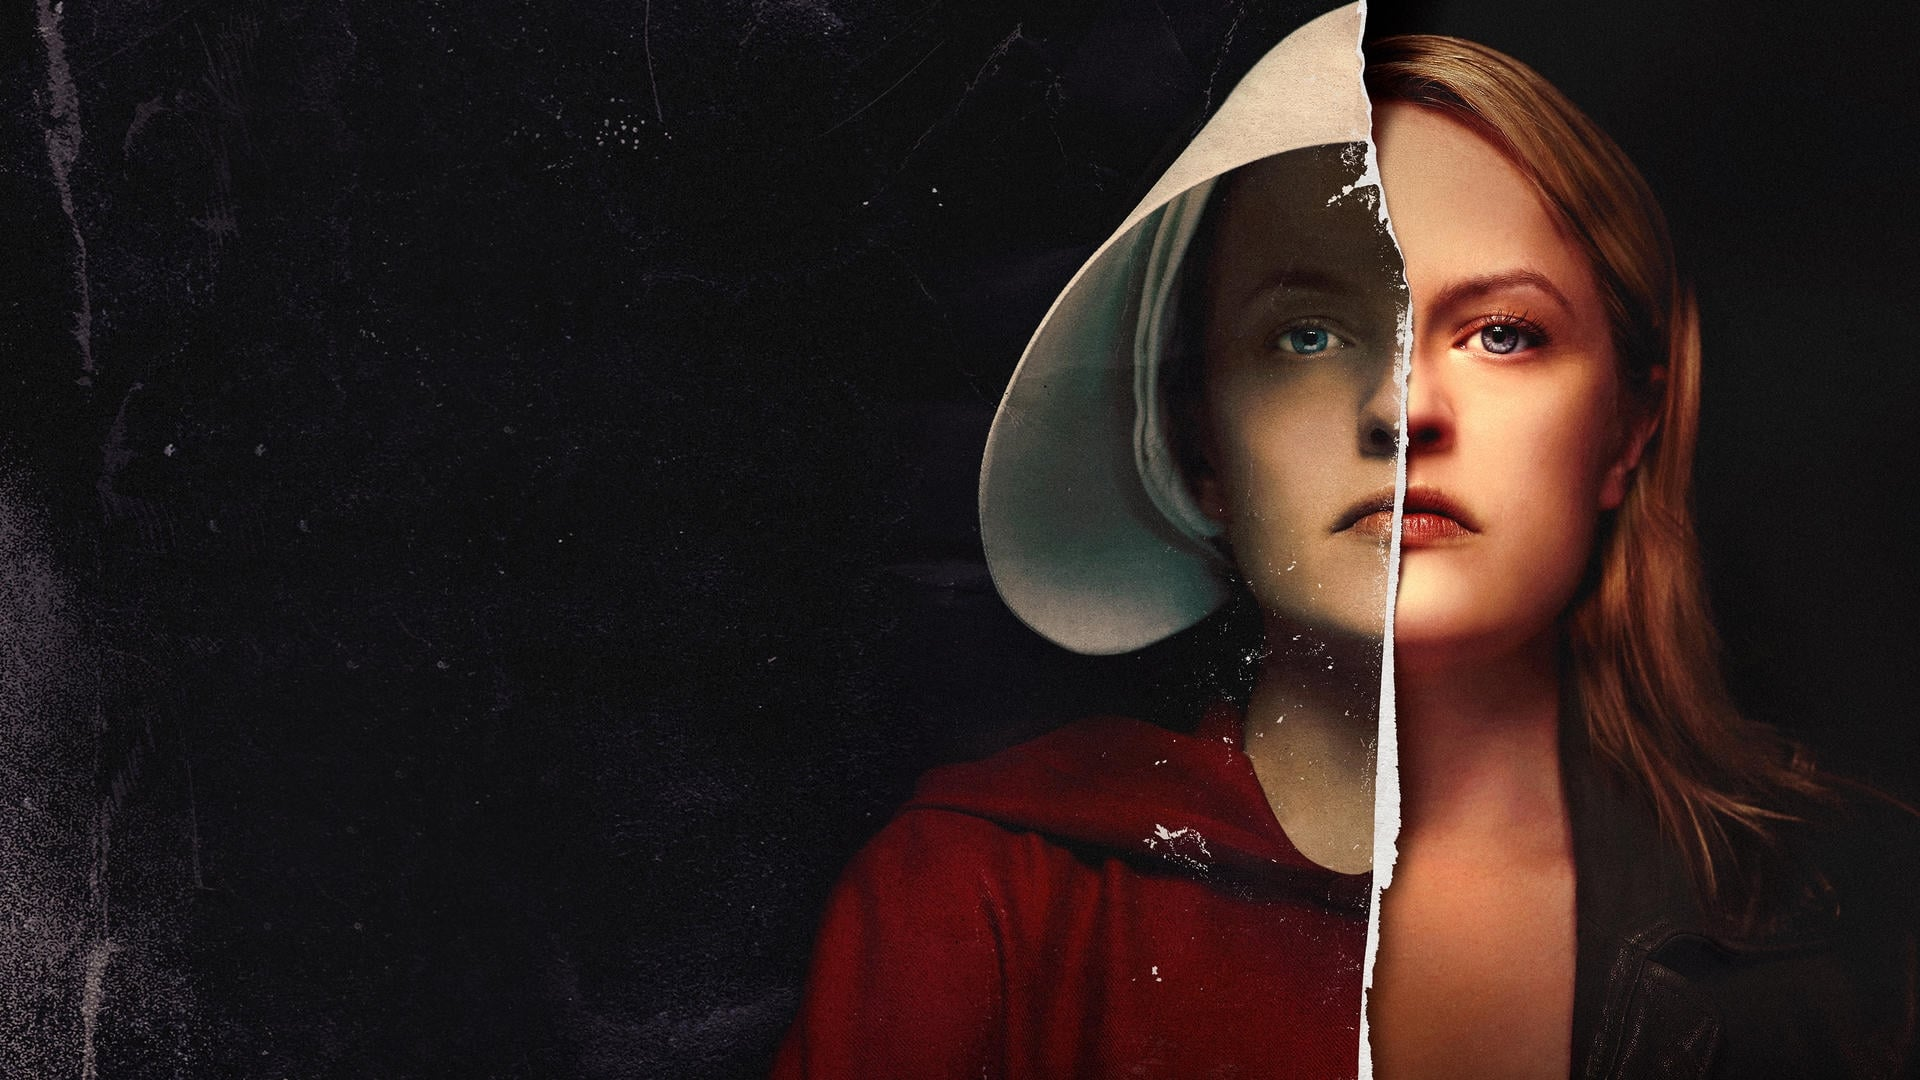 Vierde seizoen The Handmaid's Tale eind april in première